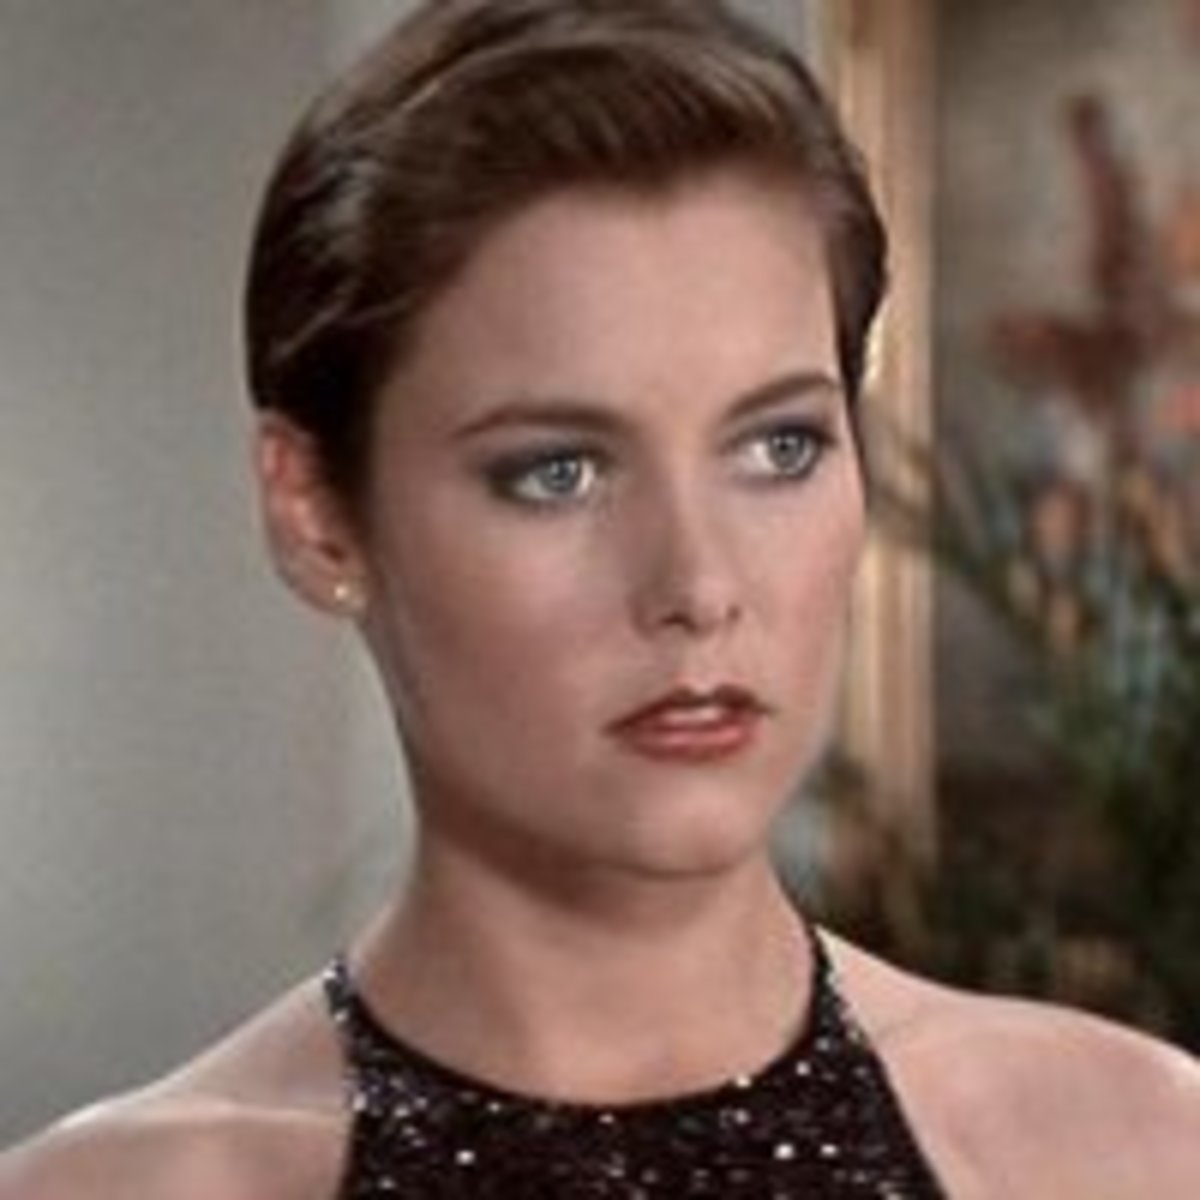 Carey Lowell as Pam Bouvier